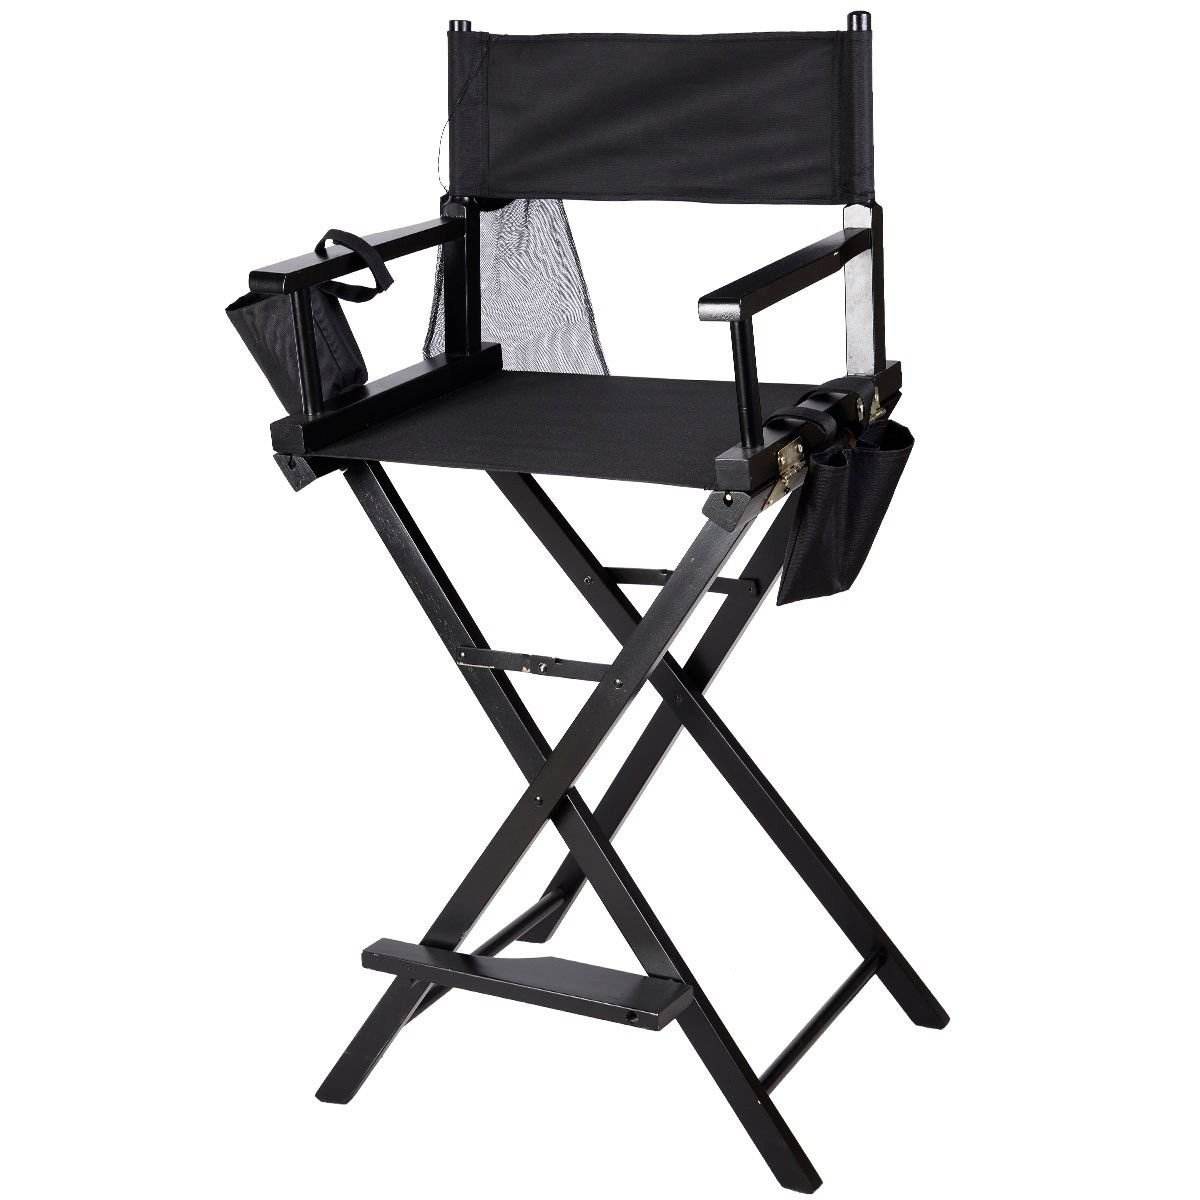 Professional Makeup Artist Directors Wood Foldable Chair Light Weight Black by JDM Auto Lights